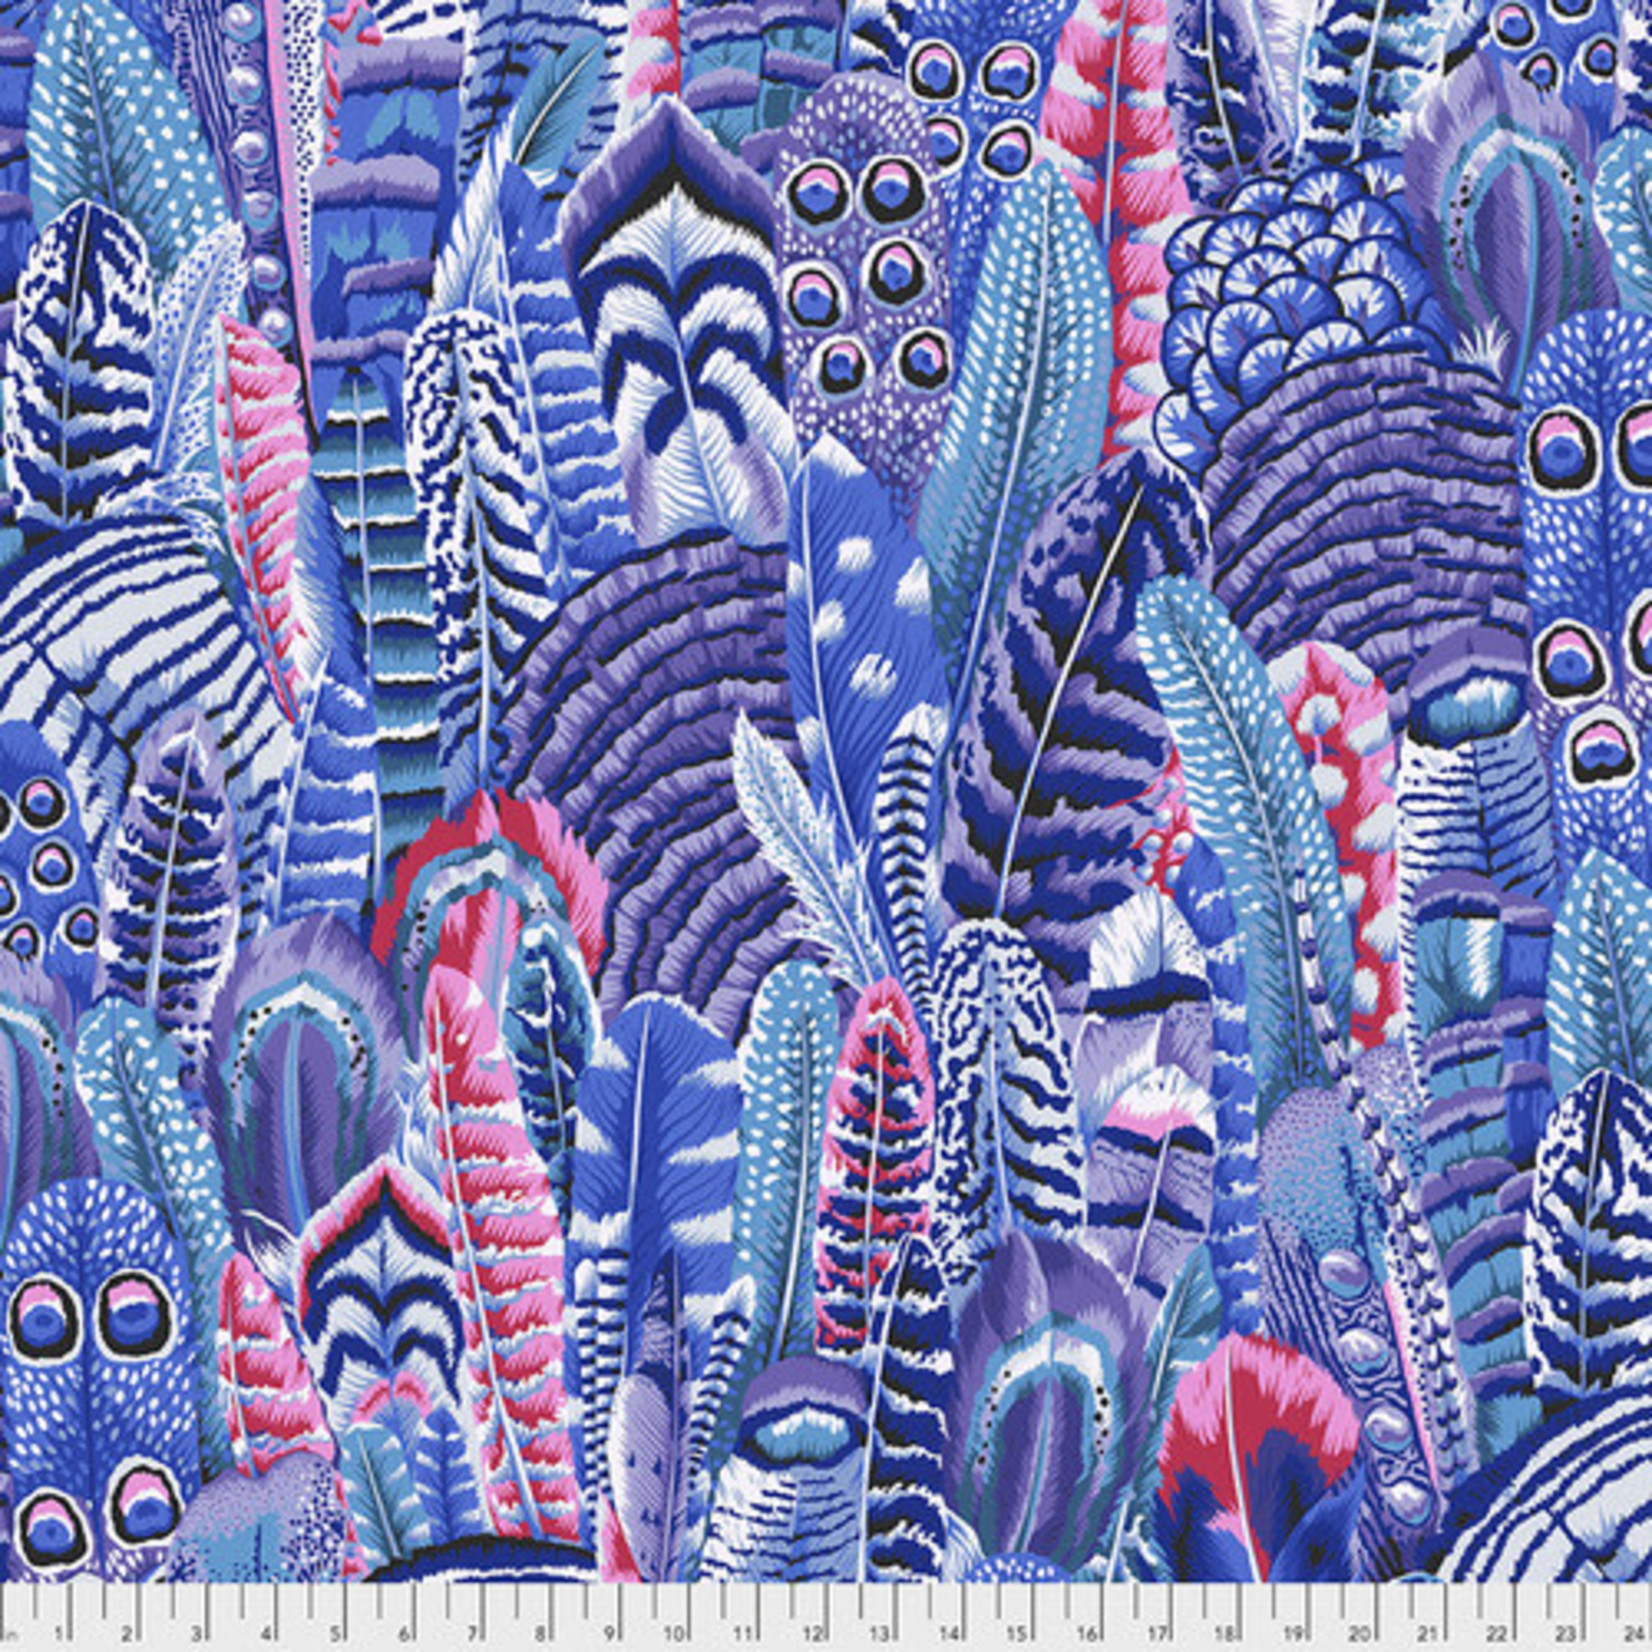 Kaffe Fassett KF Collective - Feathers, Cool (PWPJ055.COOL) $0.18 per cm or $18/m